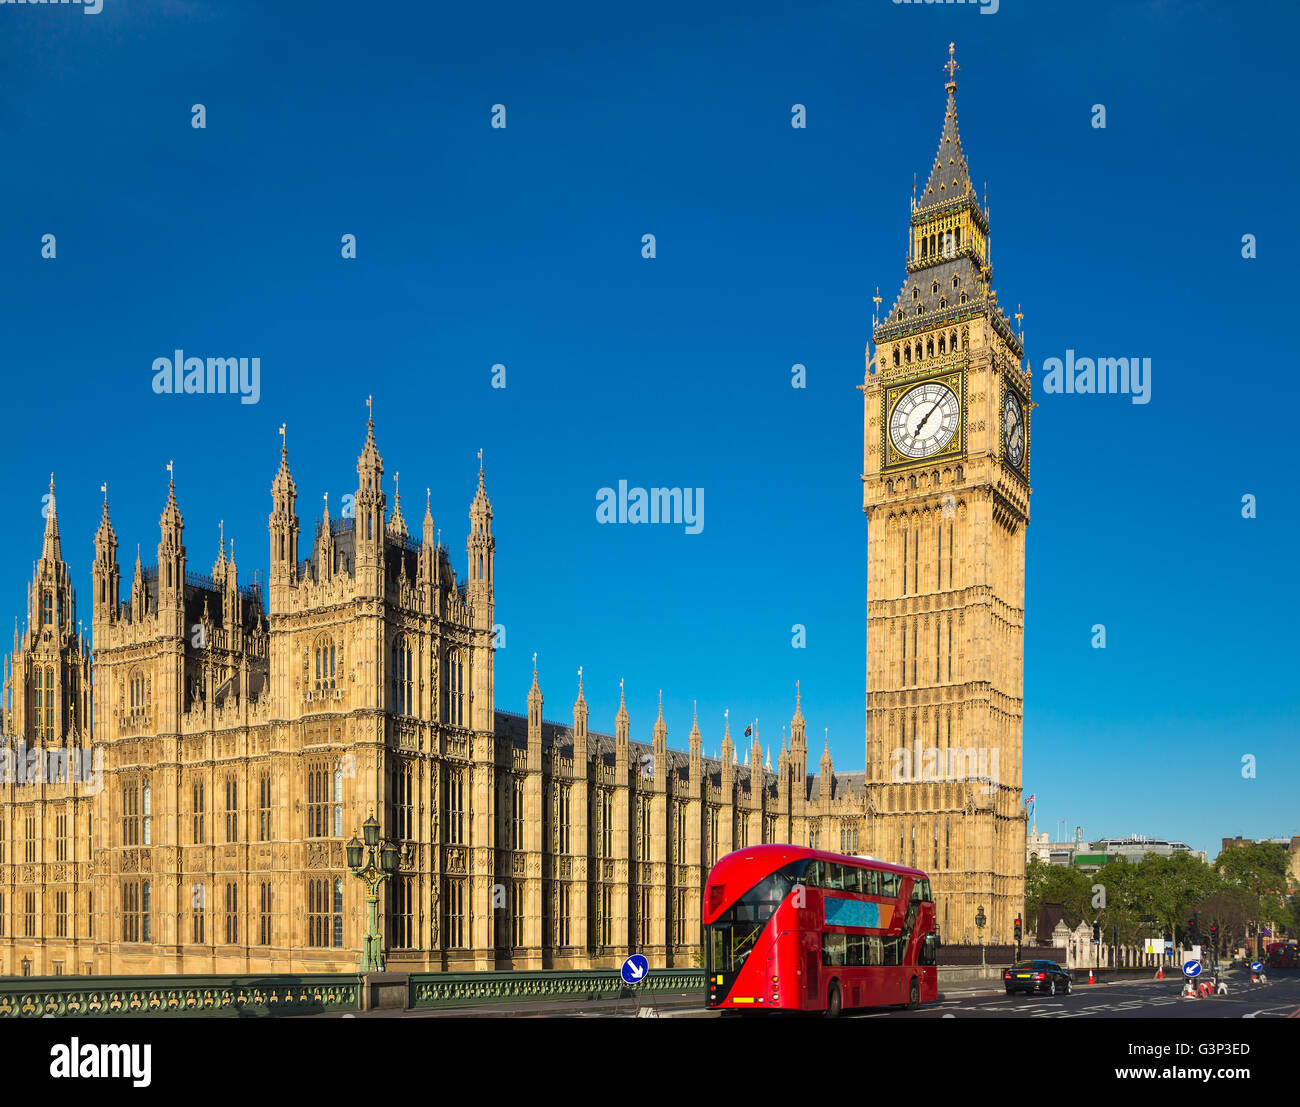 Big ben with a red bus in London - Stock Image